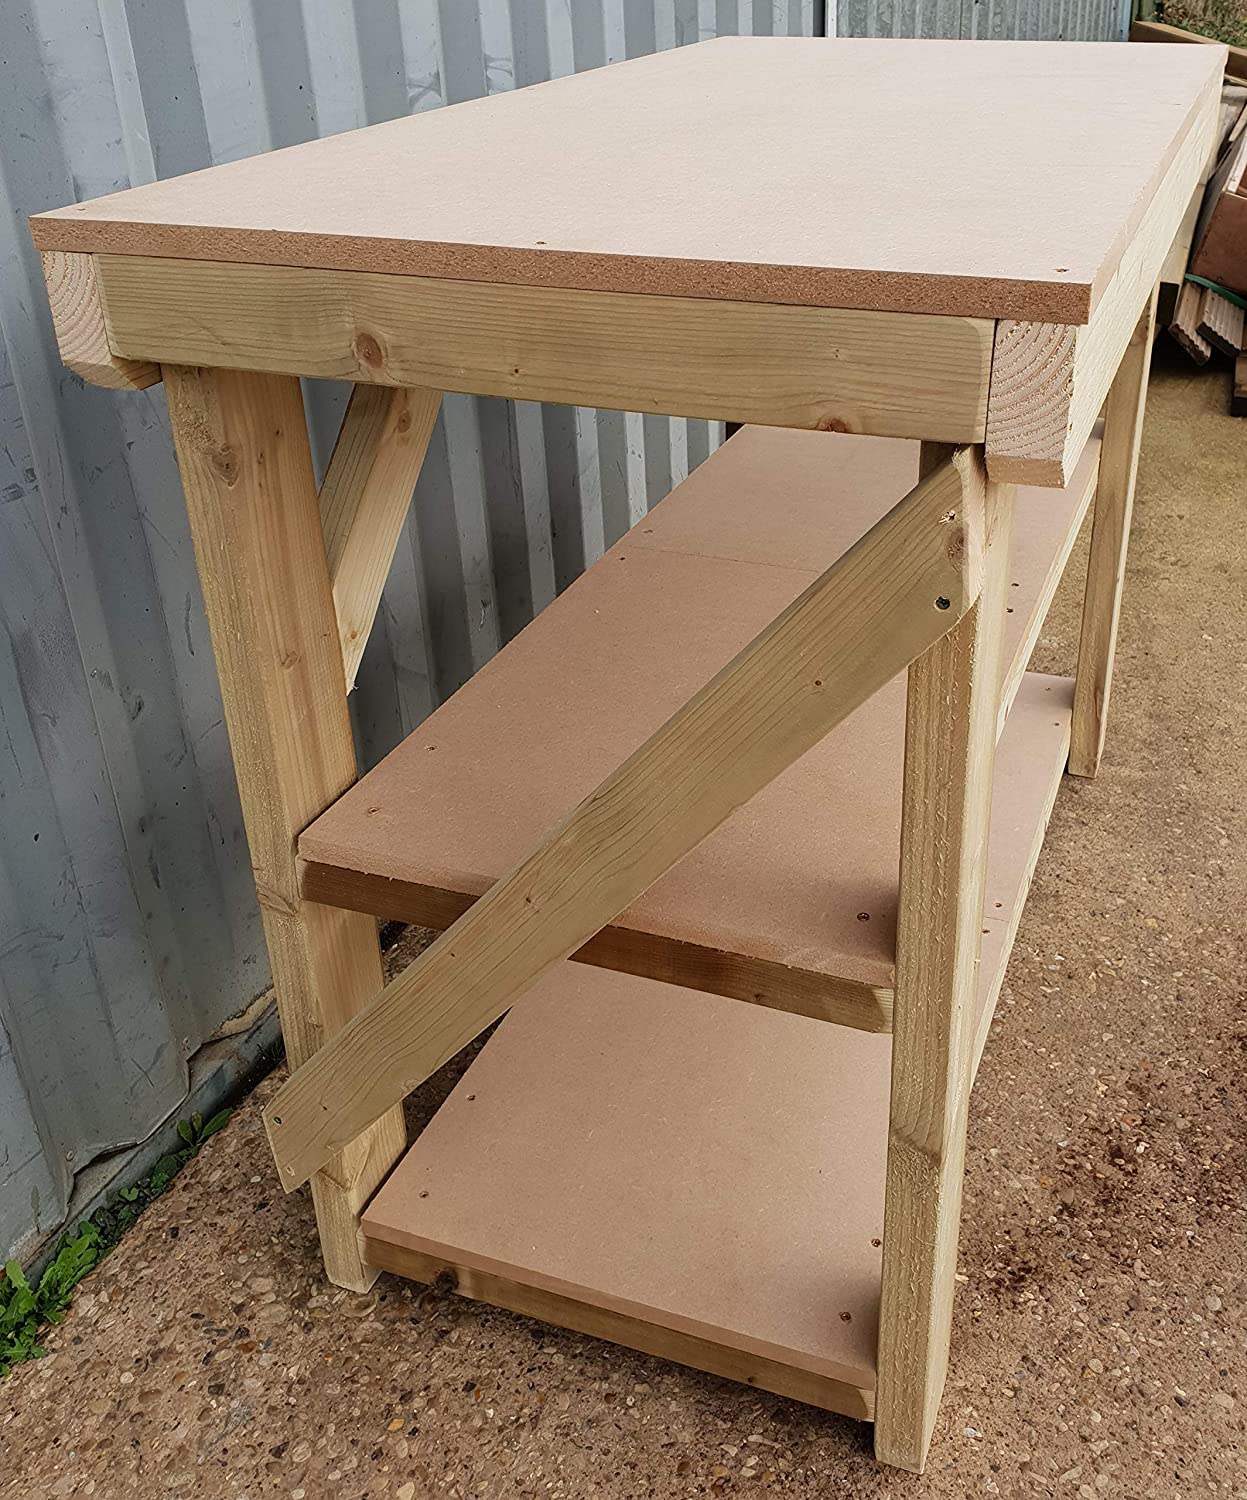 3FT to 6FT Made From Construction Grade Timber Wooden 18mm MDF WorkBench With Double Shelf 3Ft Work Table Hand Made Strong Heavy Duty